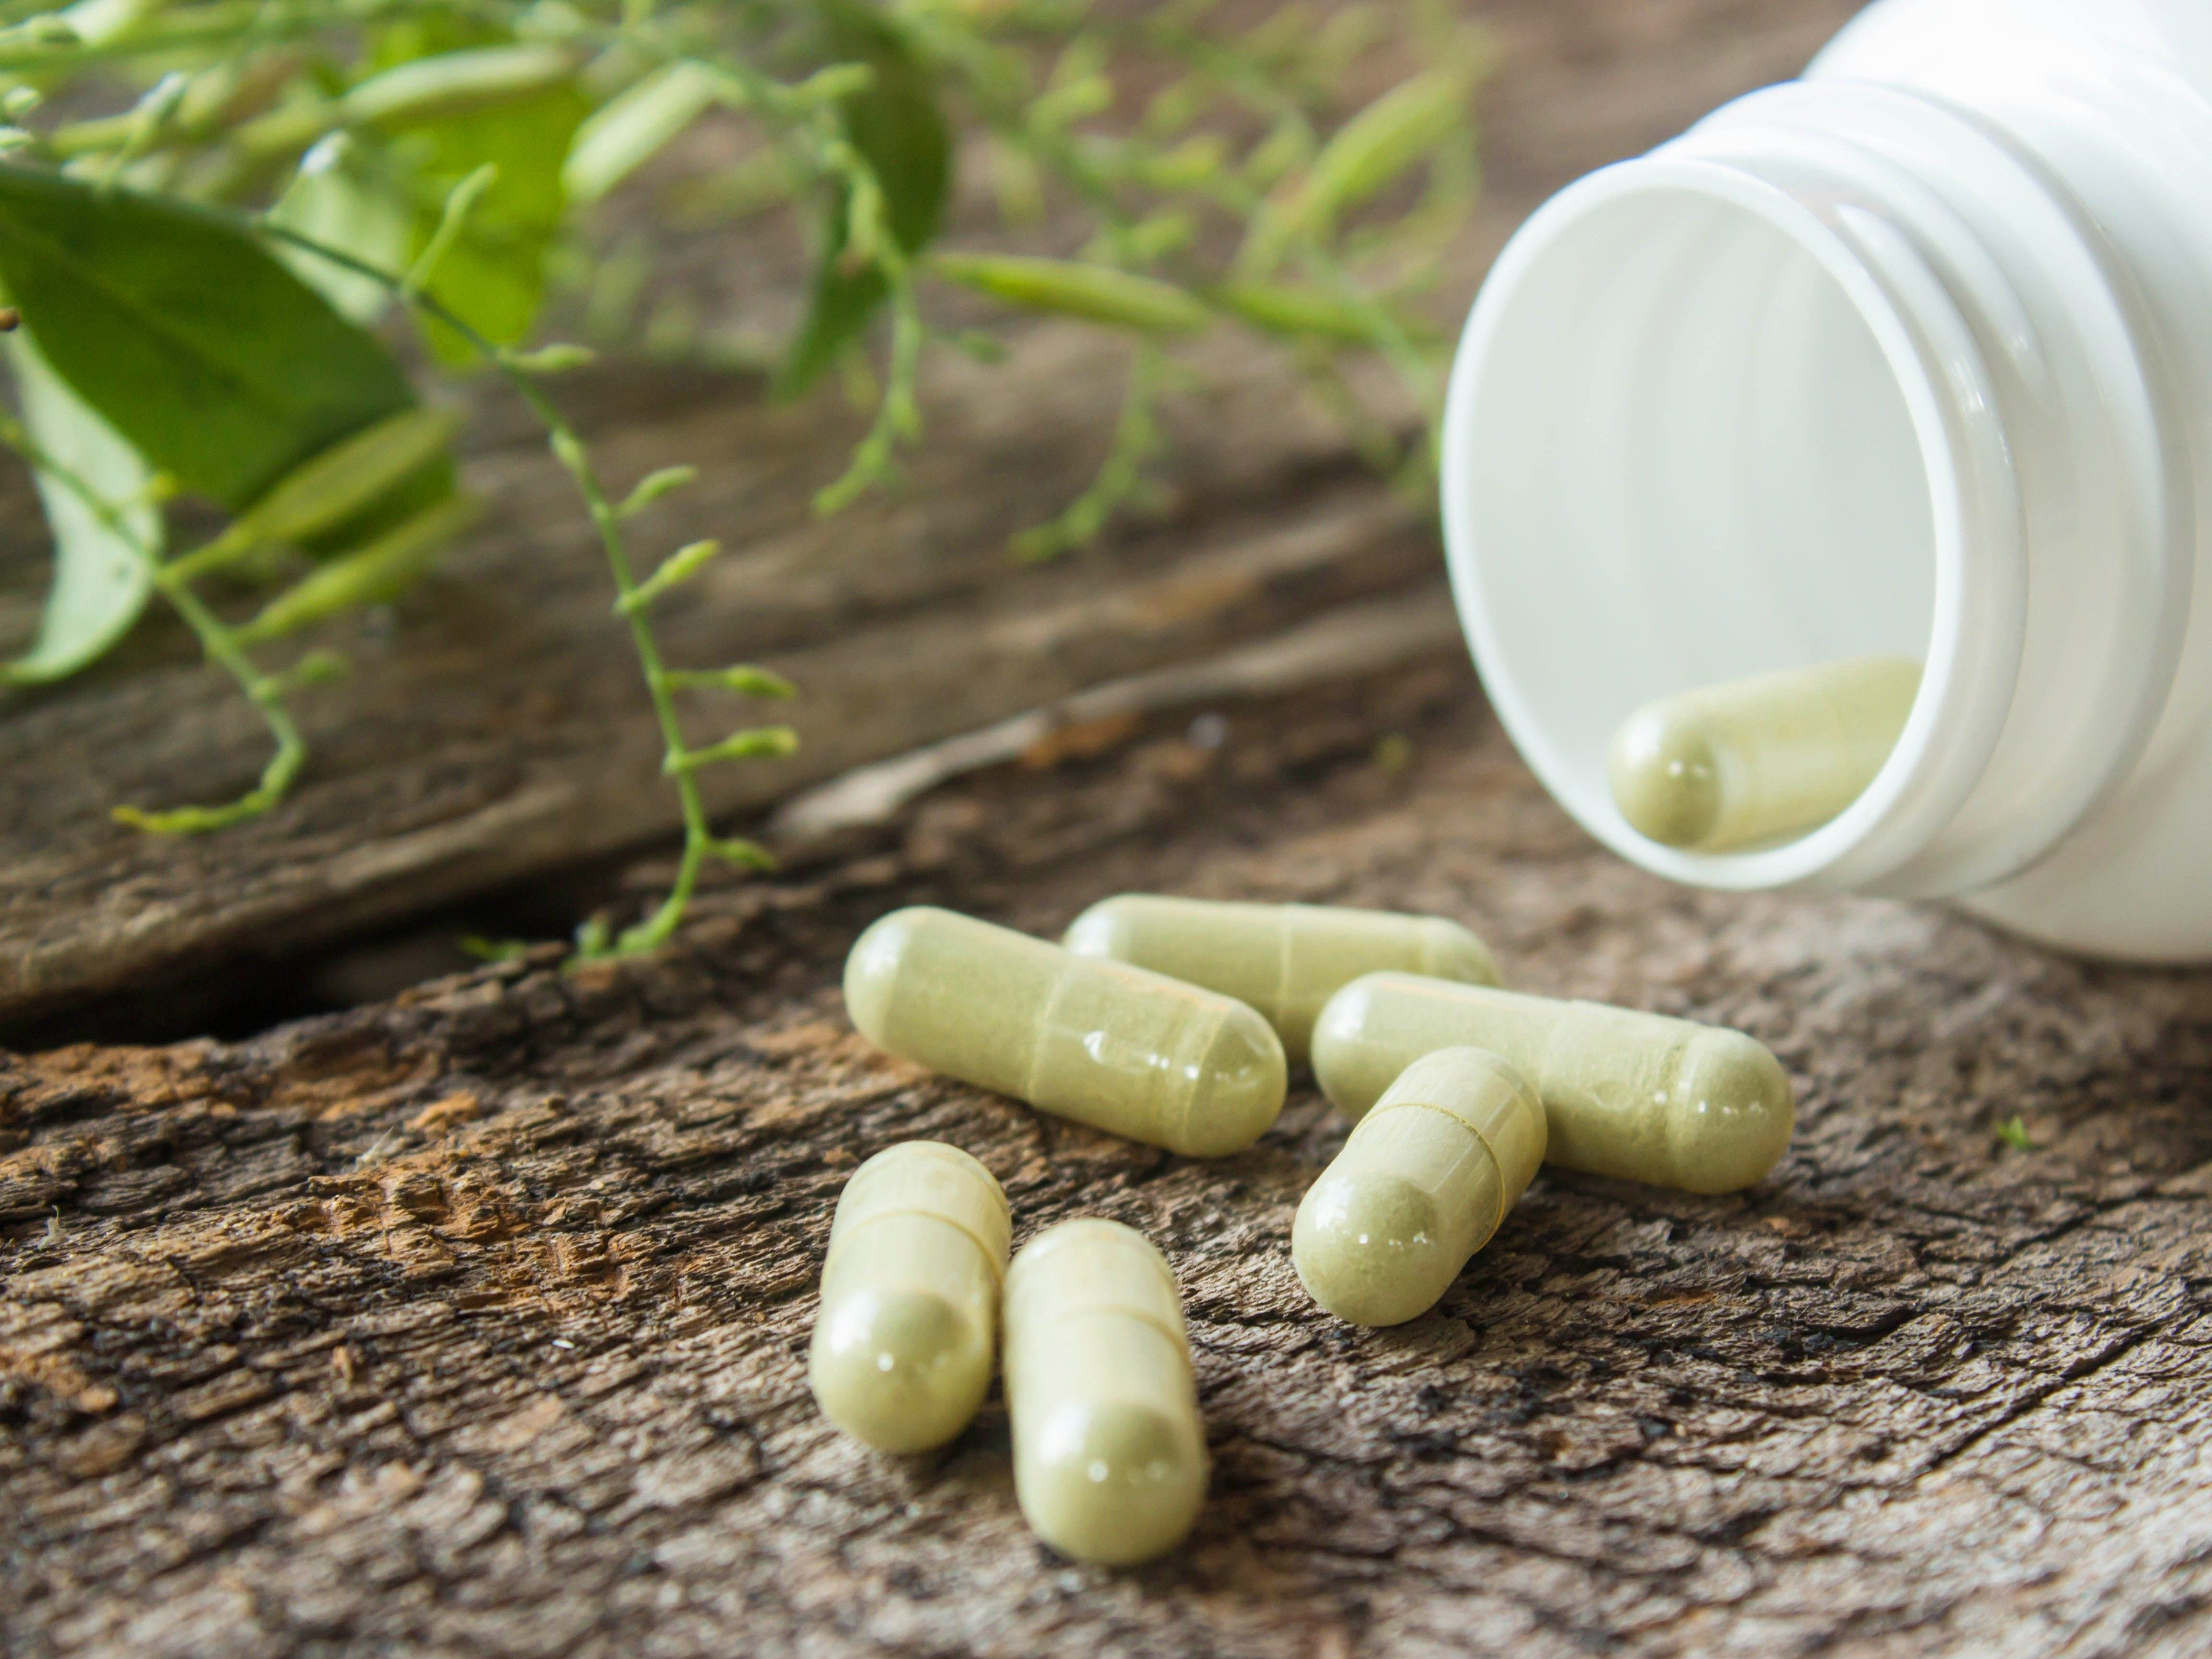 Organic supplements for muscle growth